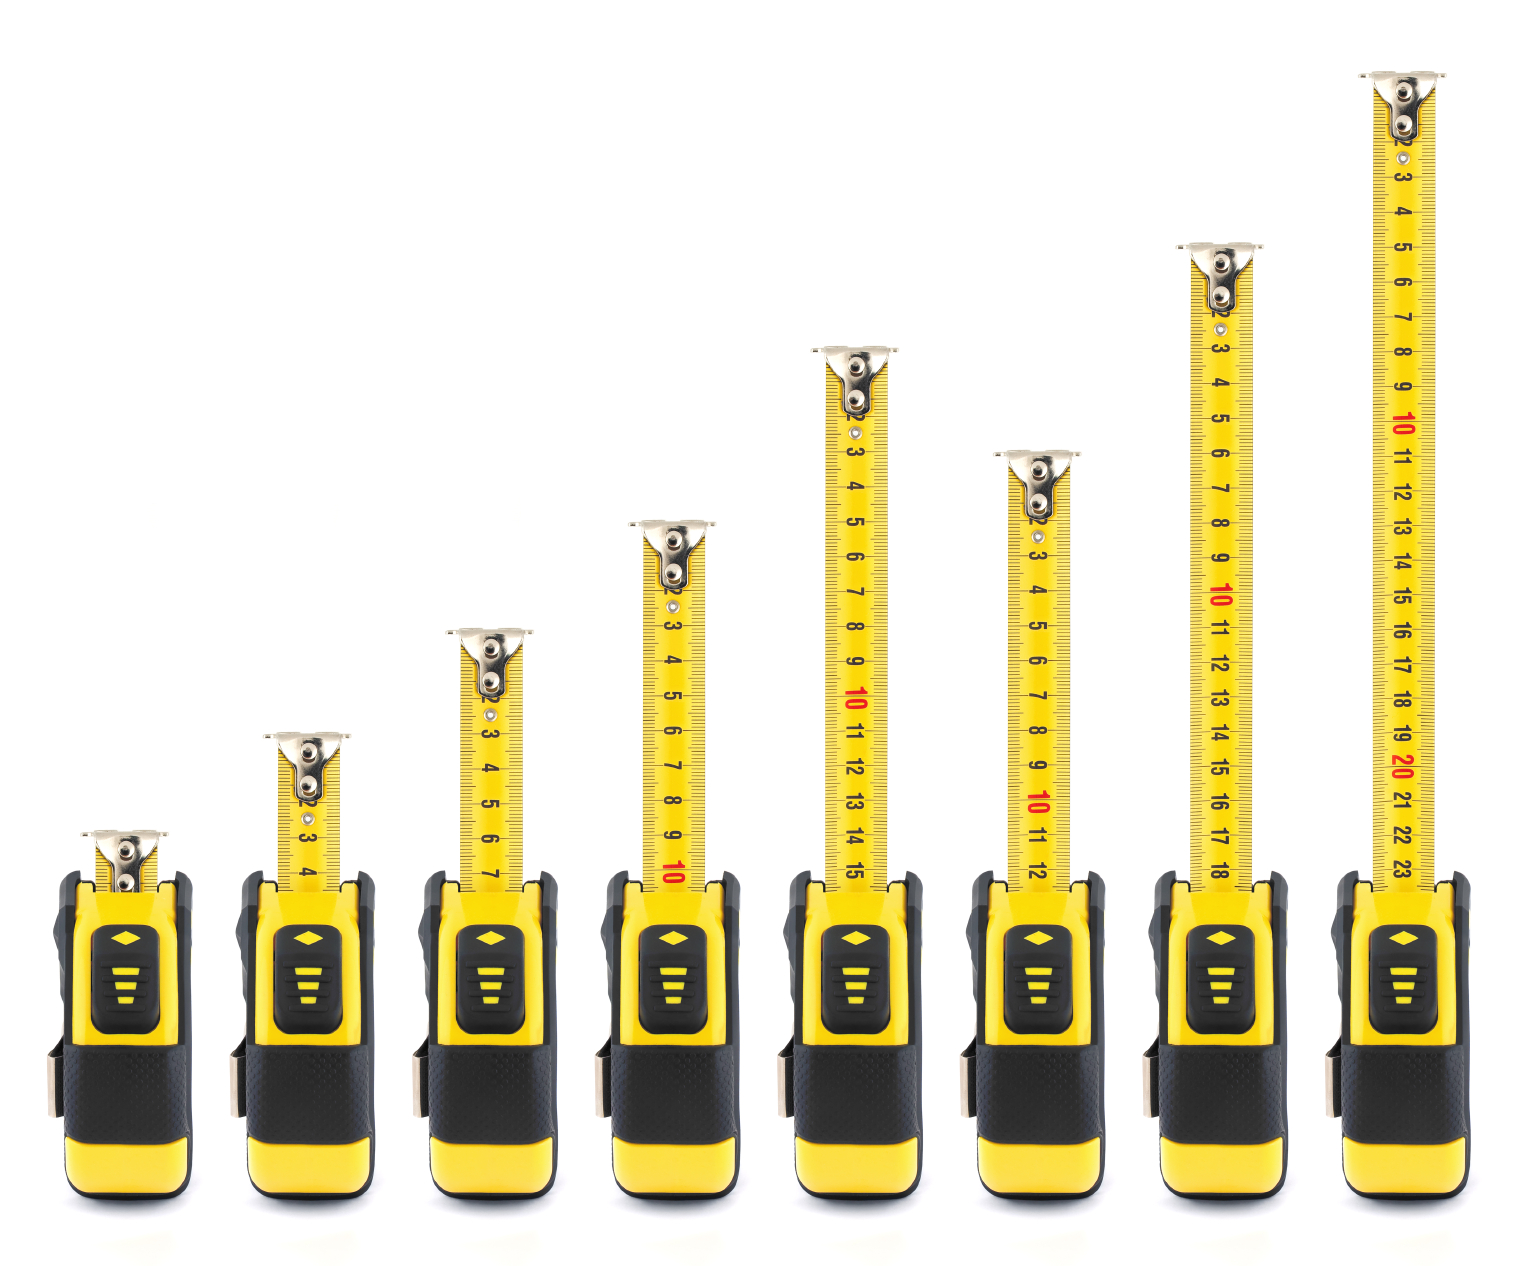 Top Tips and Tools to Measure Social Media ROI